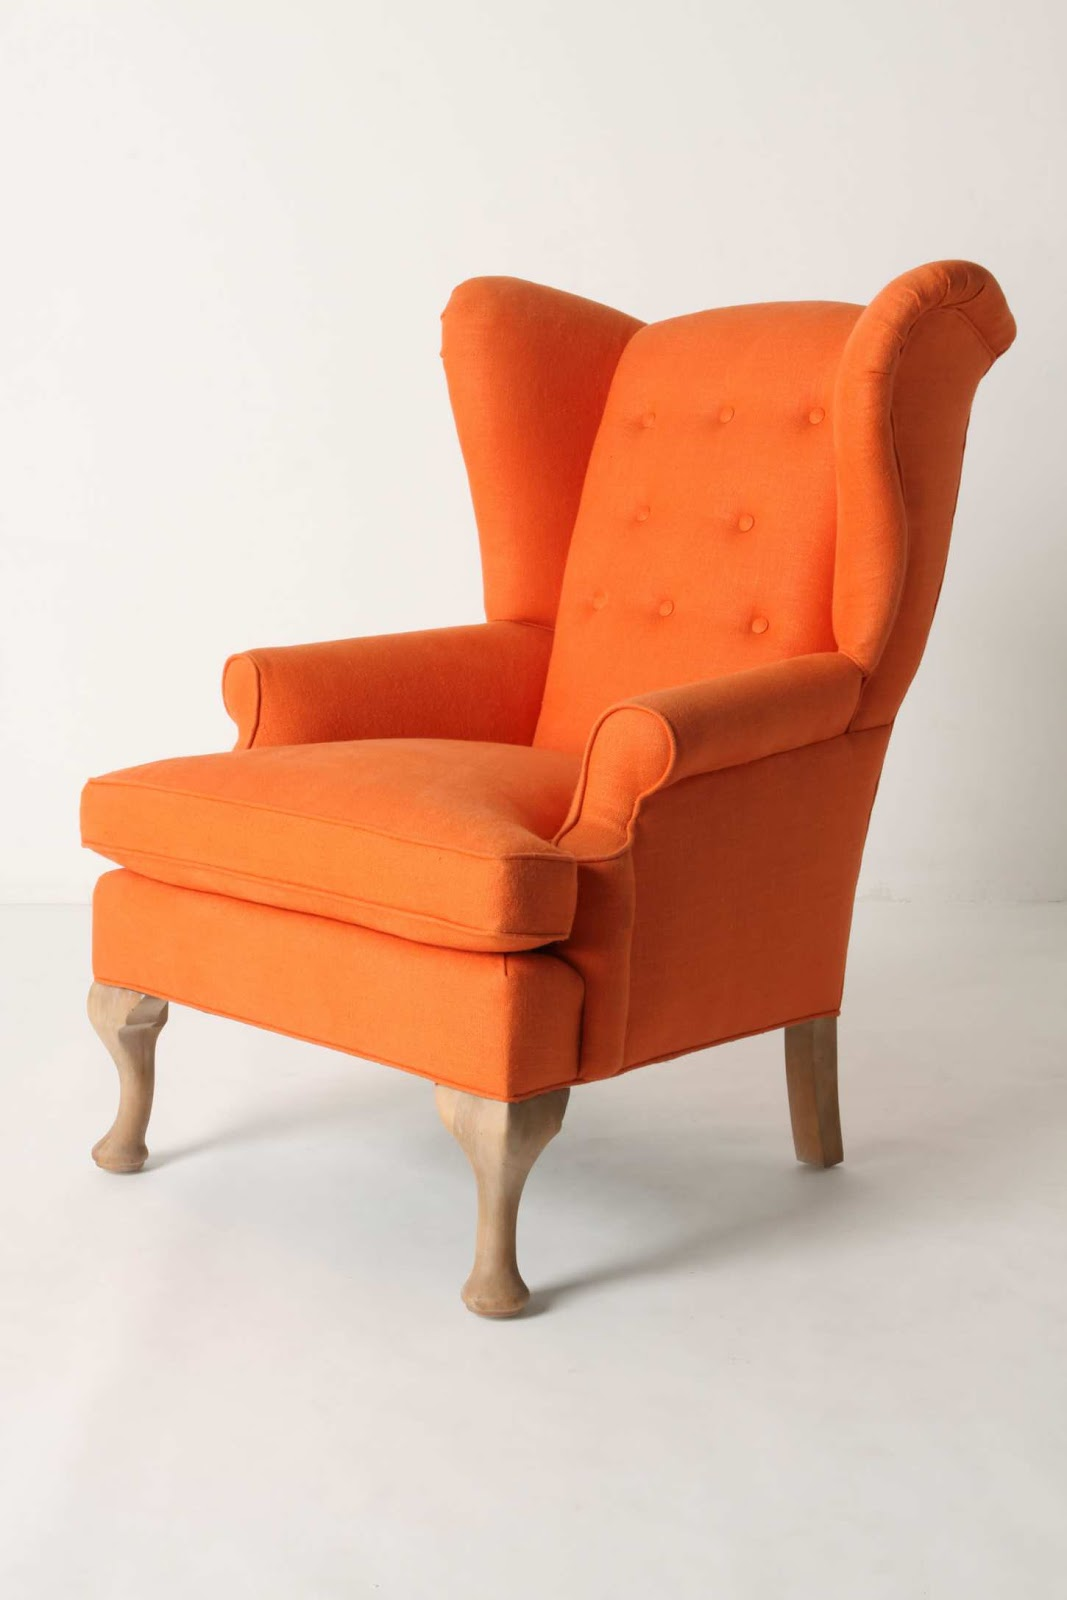 10 Wing back Chair Design Ideas for Living Room Interior ...